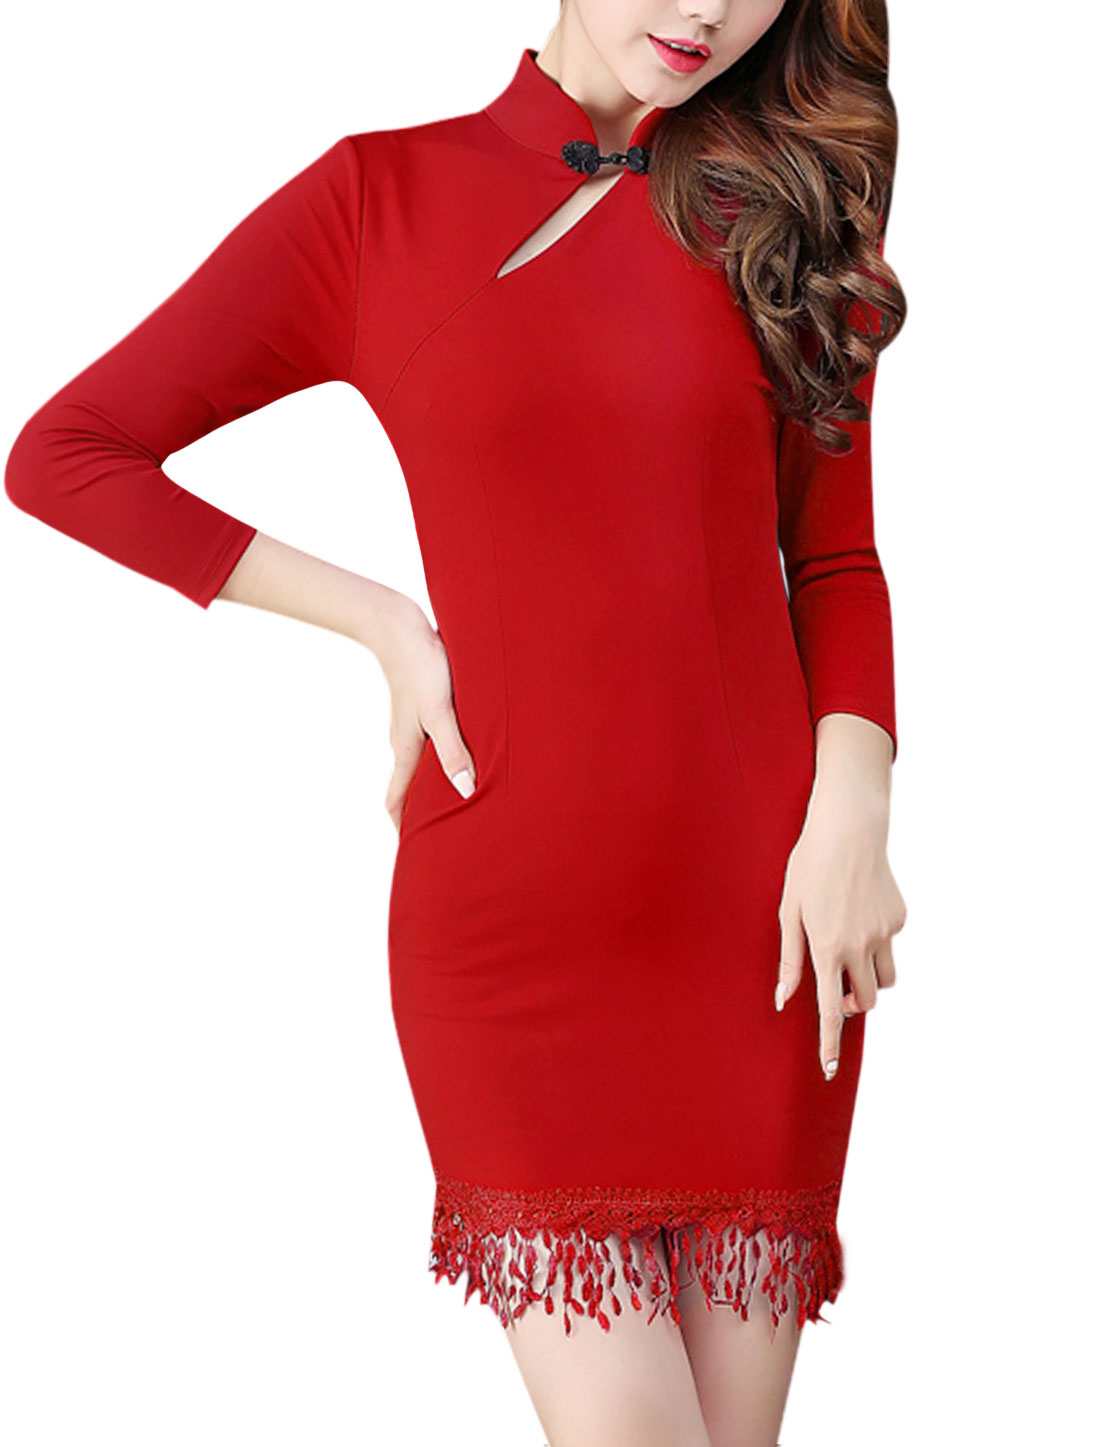 Ladies Mandarin Collar Mini Fringes Bodycon Dress Red M